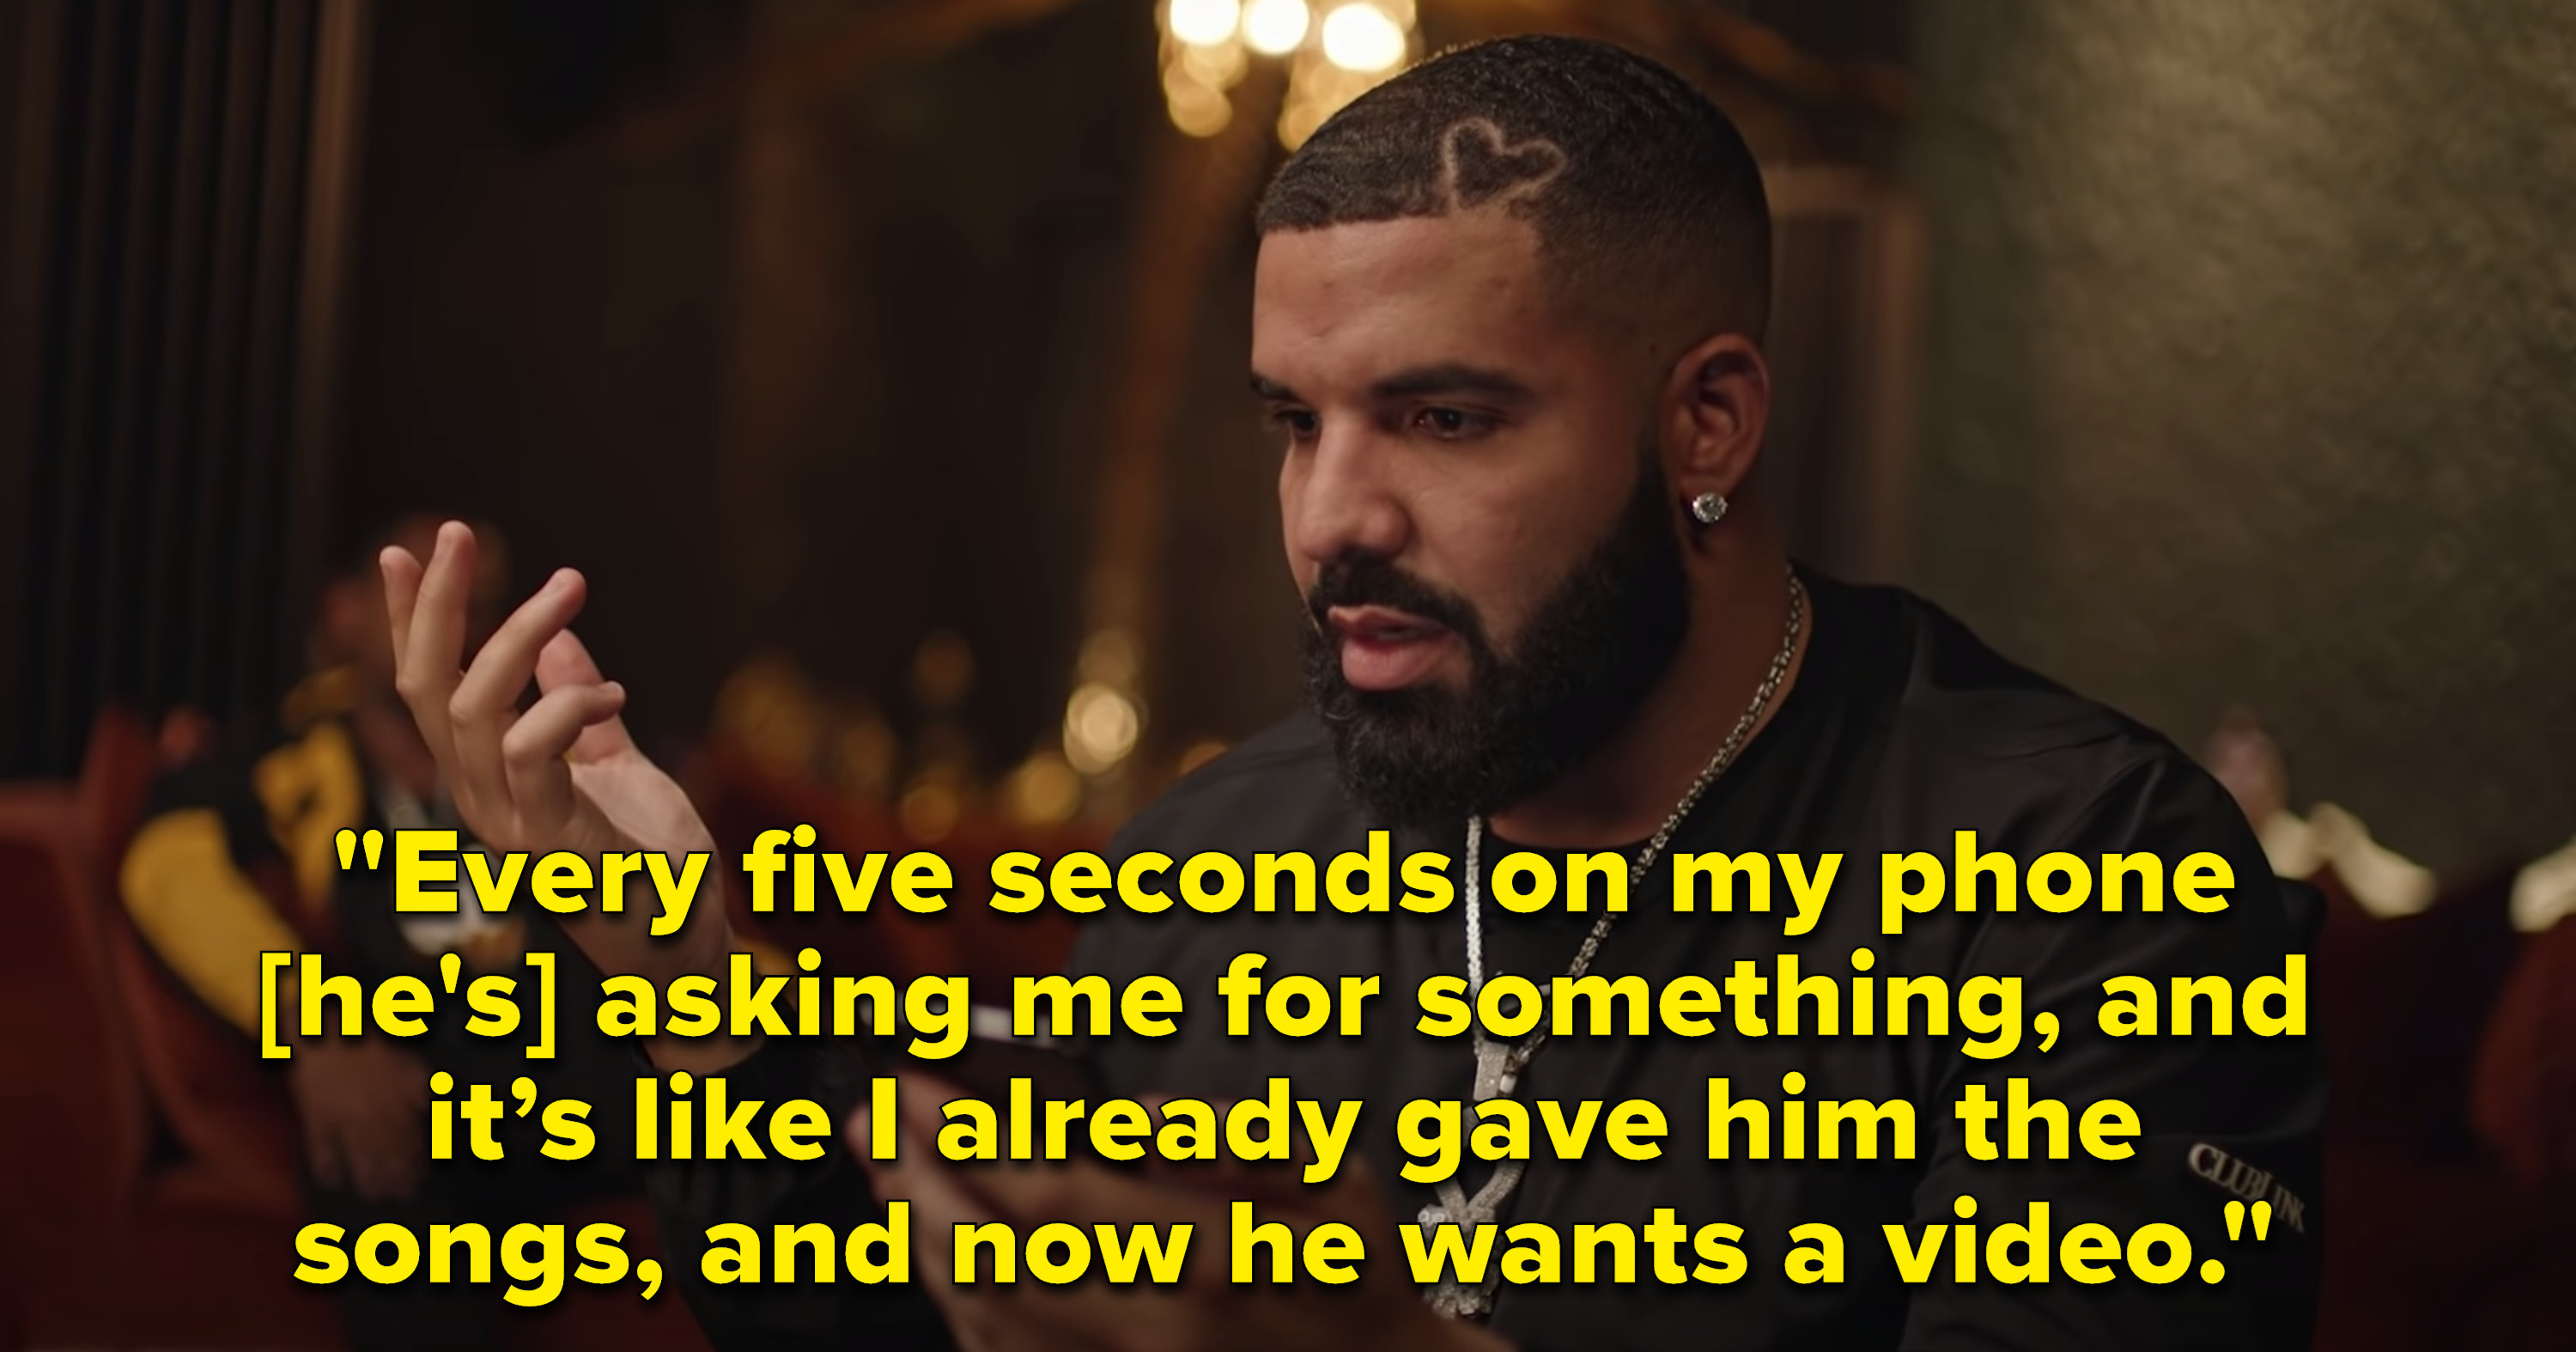 """Drake says of Khaled """"Every 5 seconds on my phone he's asking me for something, and it's like I already gave him the songs, and now he wants a video"""""""